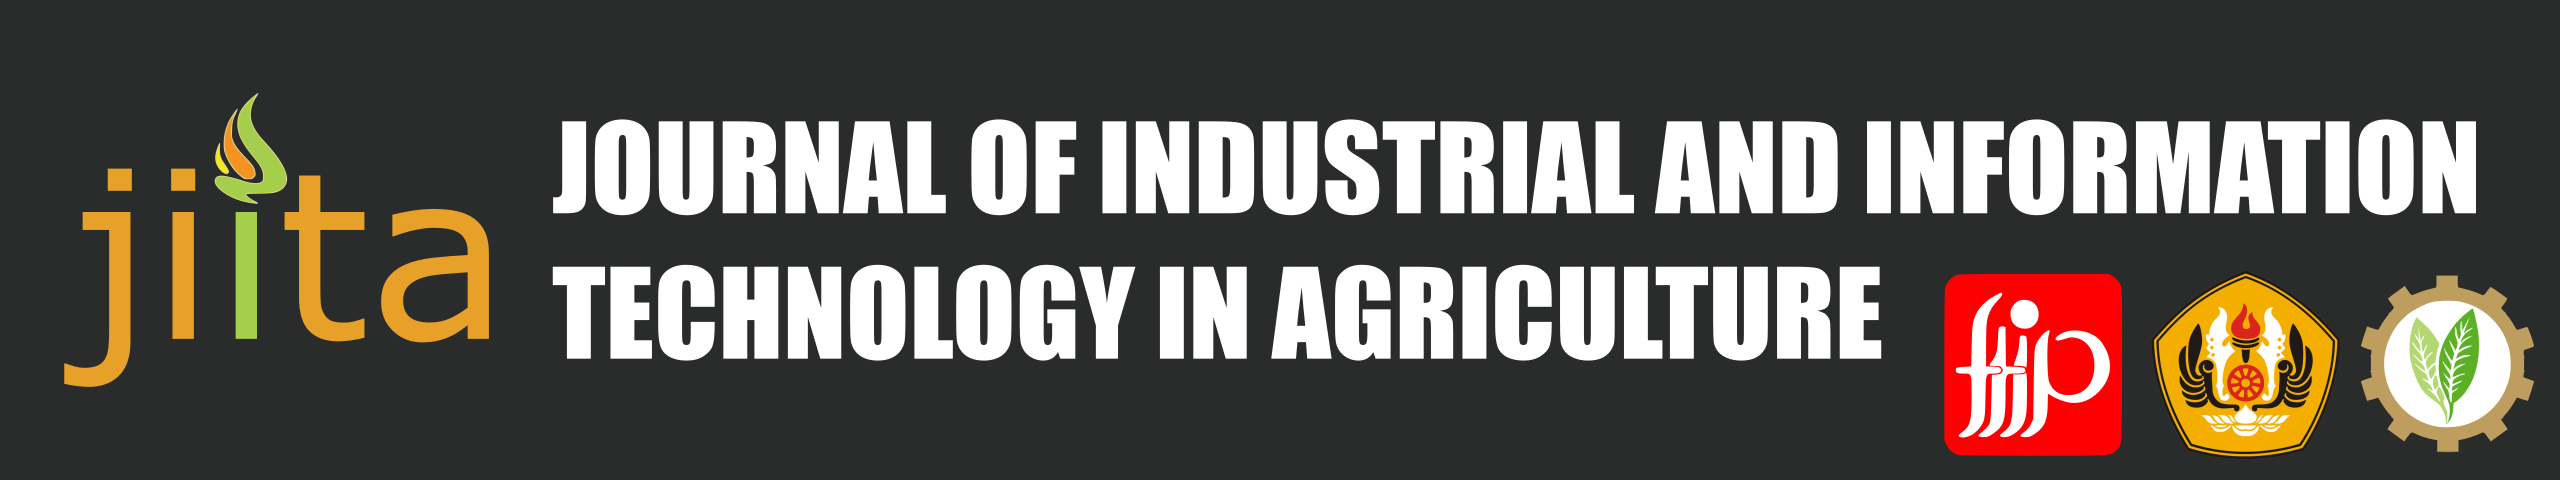 Journal of Industrial and Information Technology in Agriculture